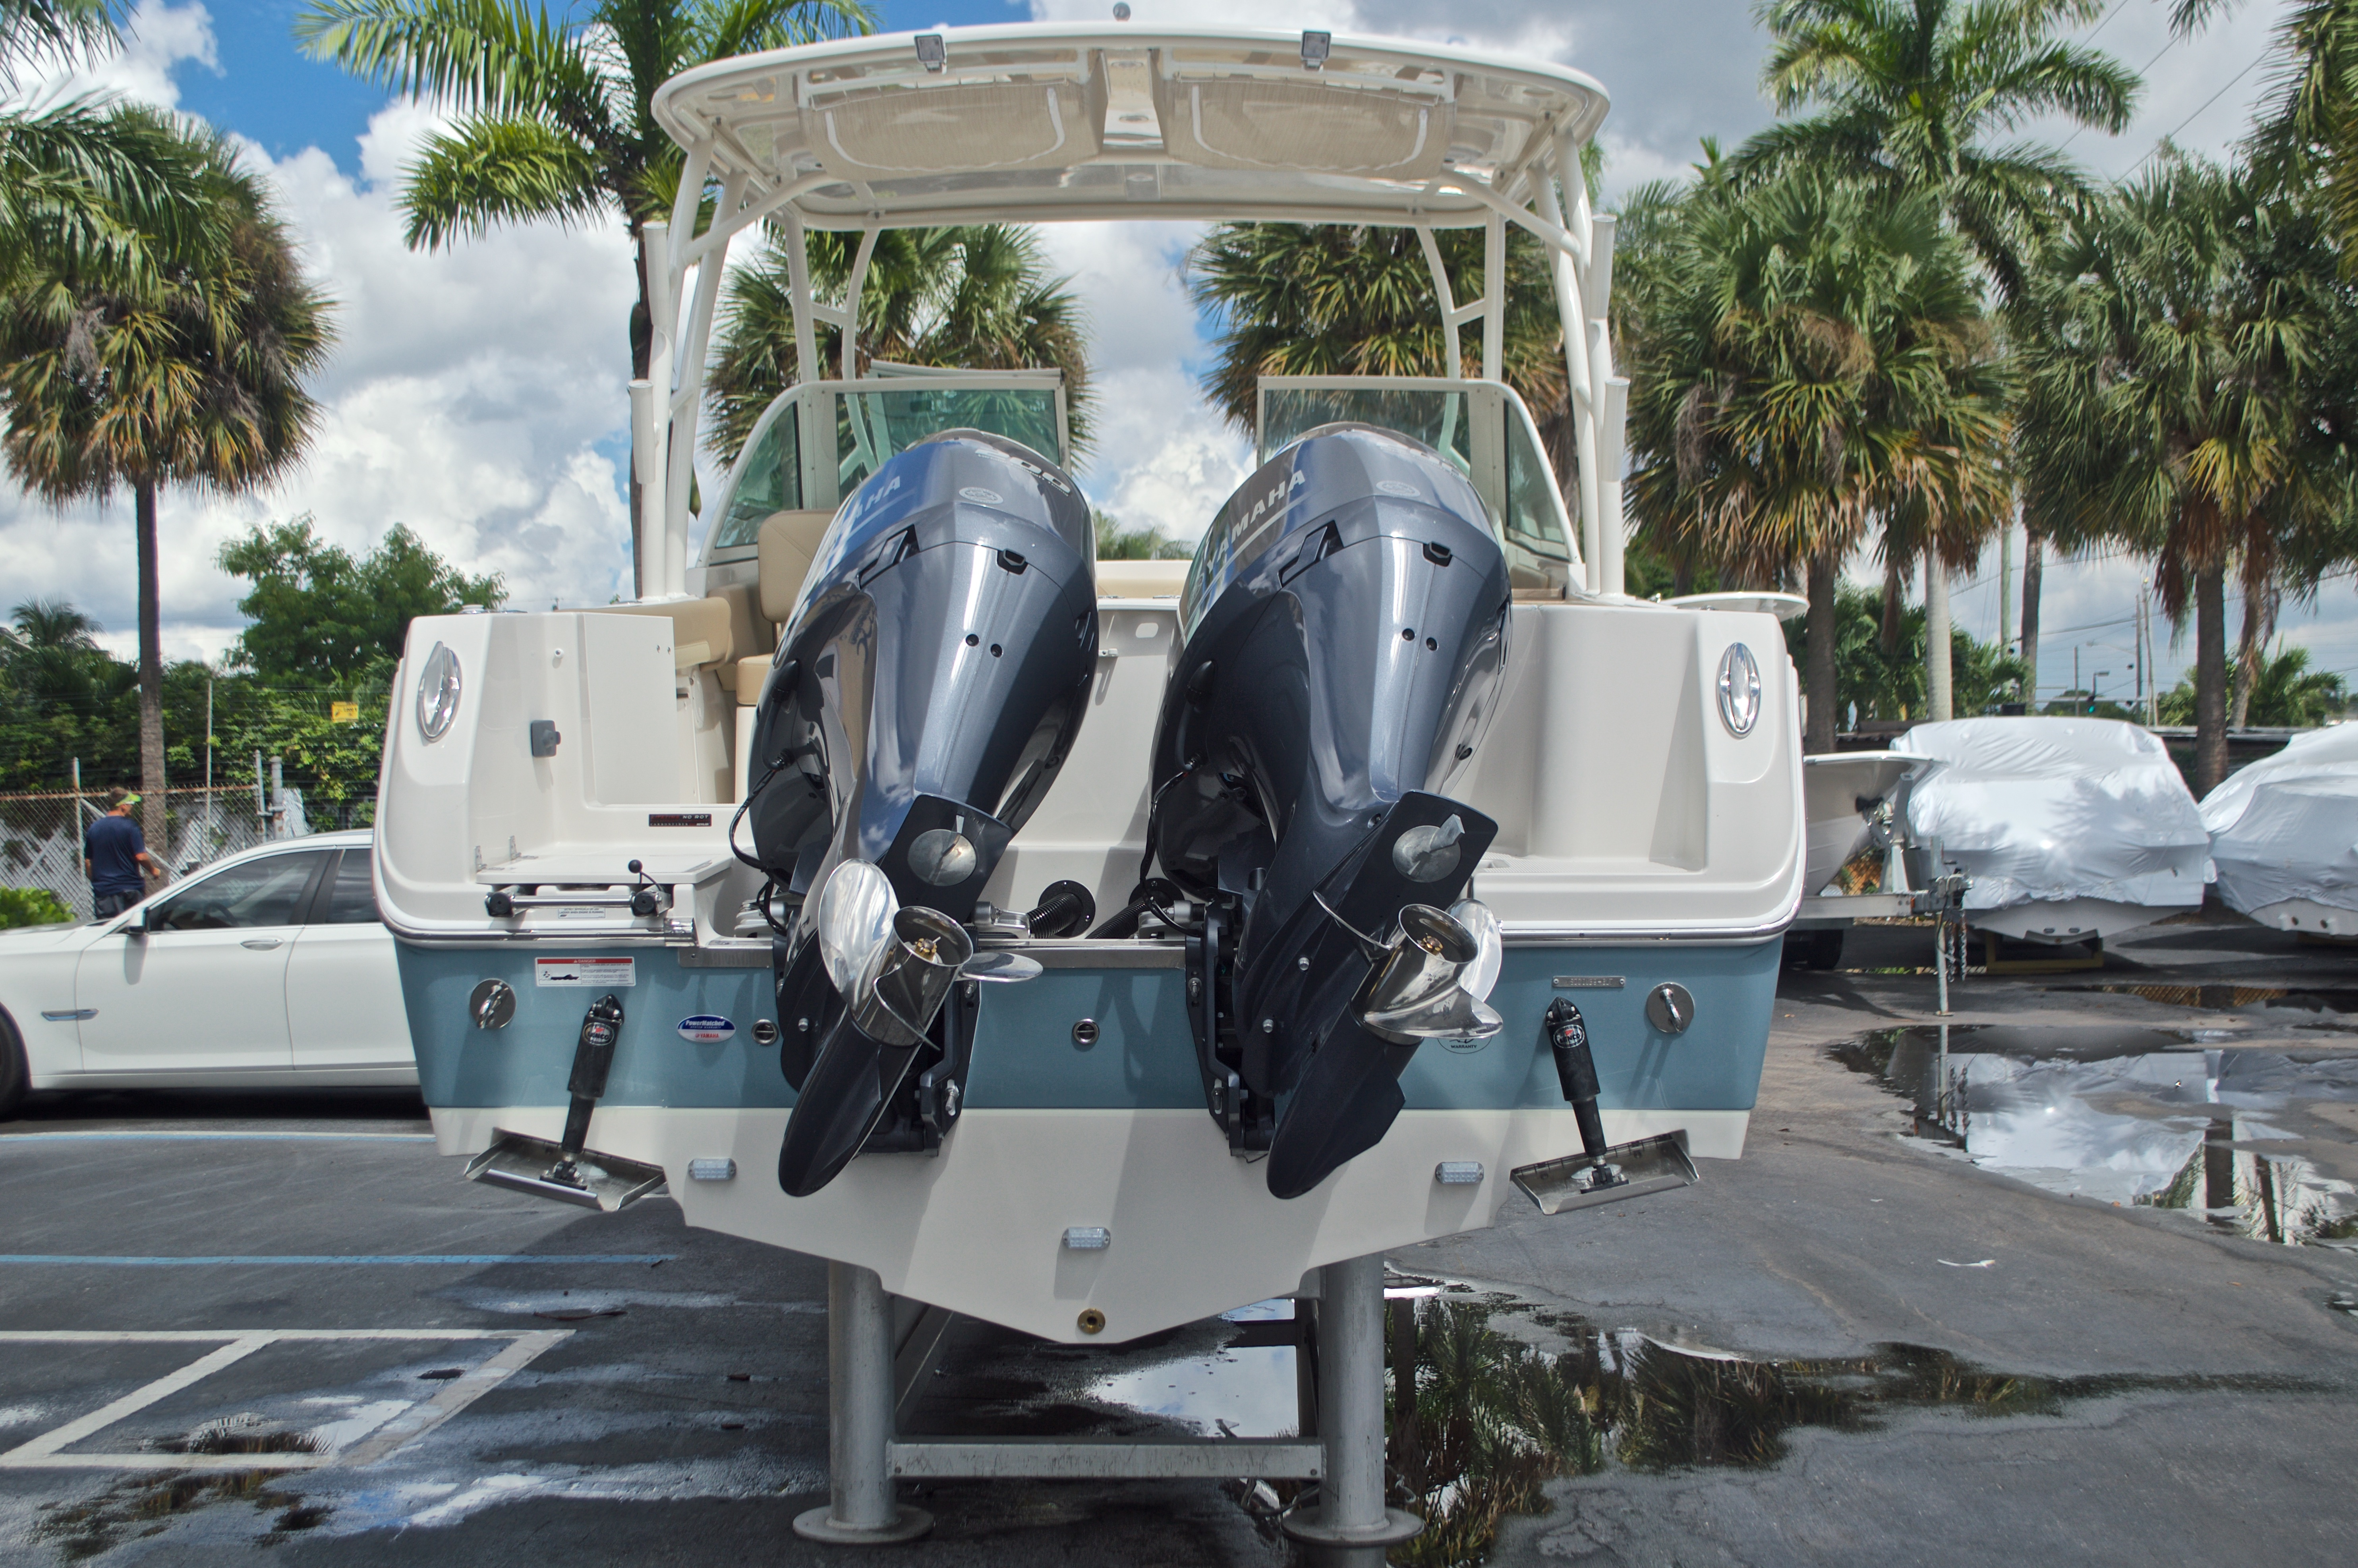 Thumbnail 7 for New 2017 Sailfish 275 Dual Console boat for sale in Vero Beach, FL